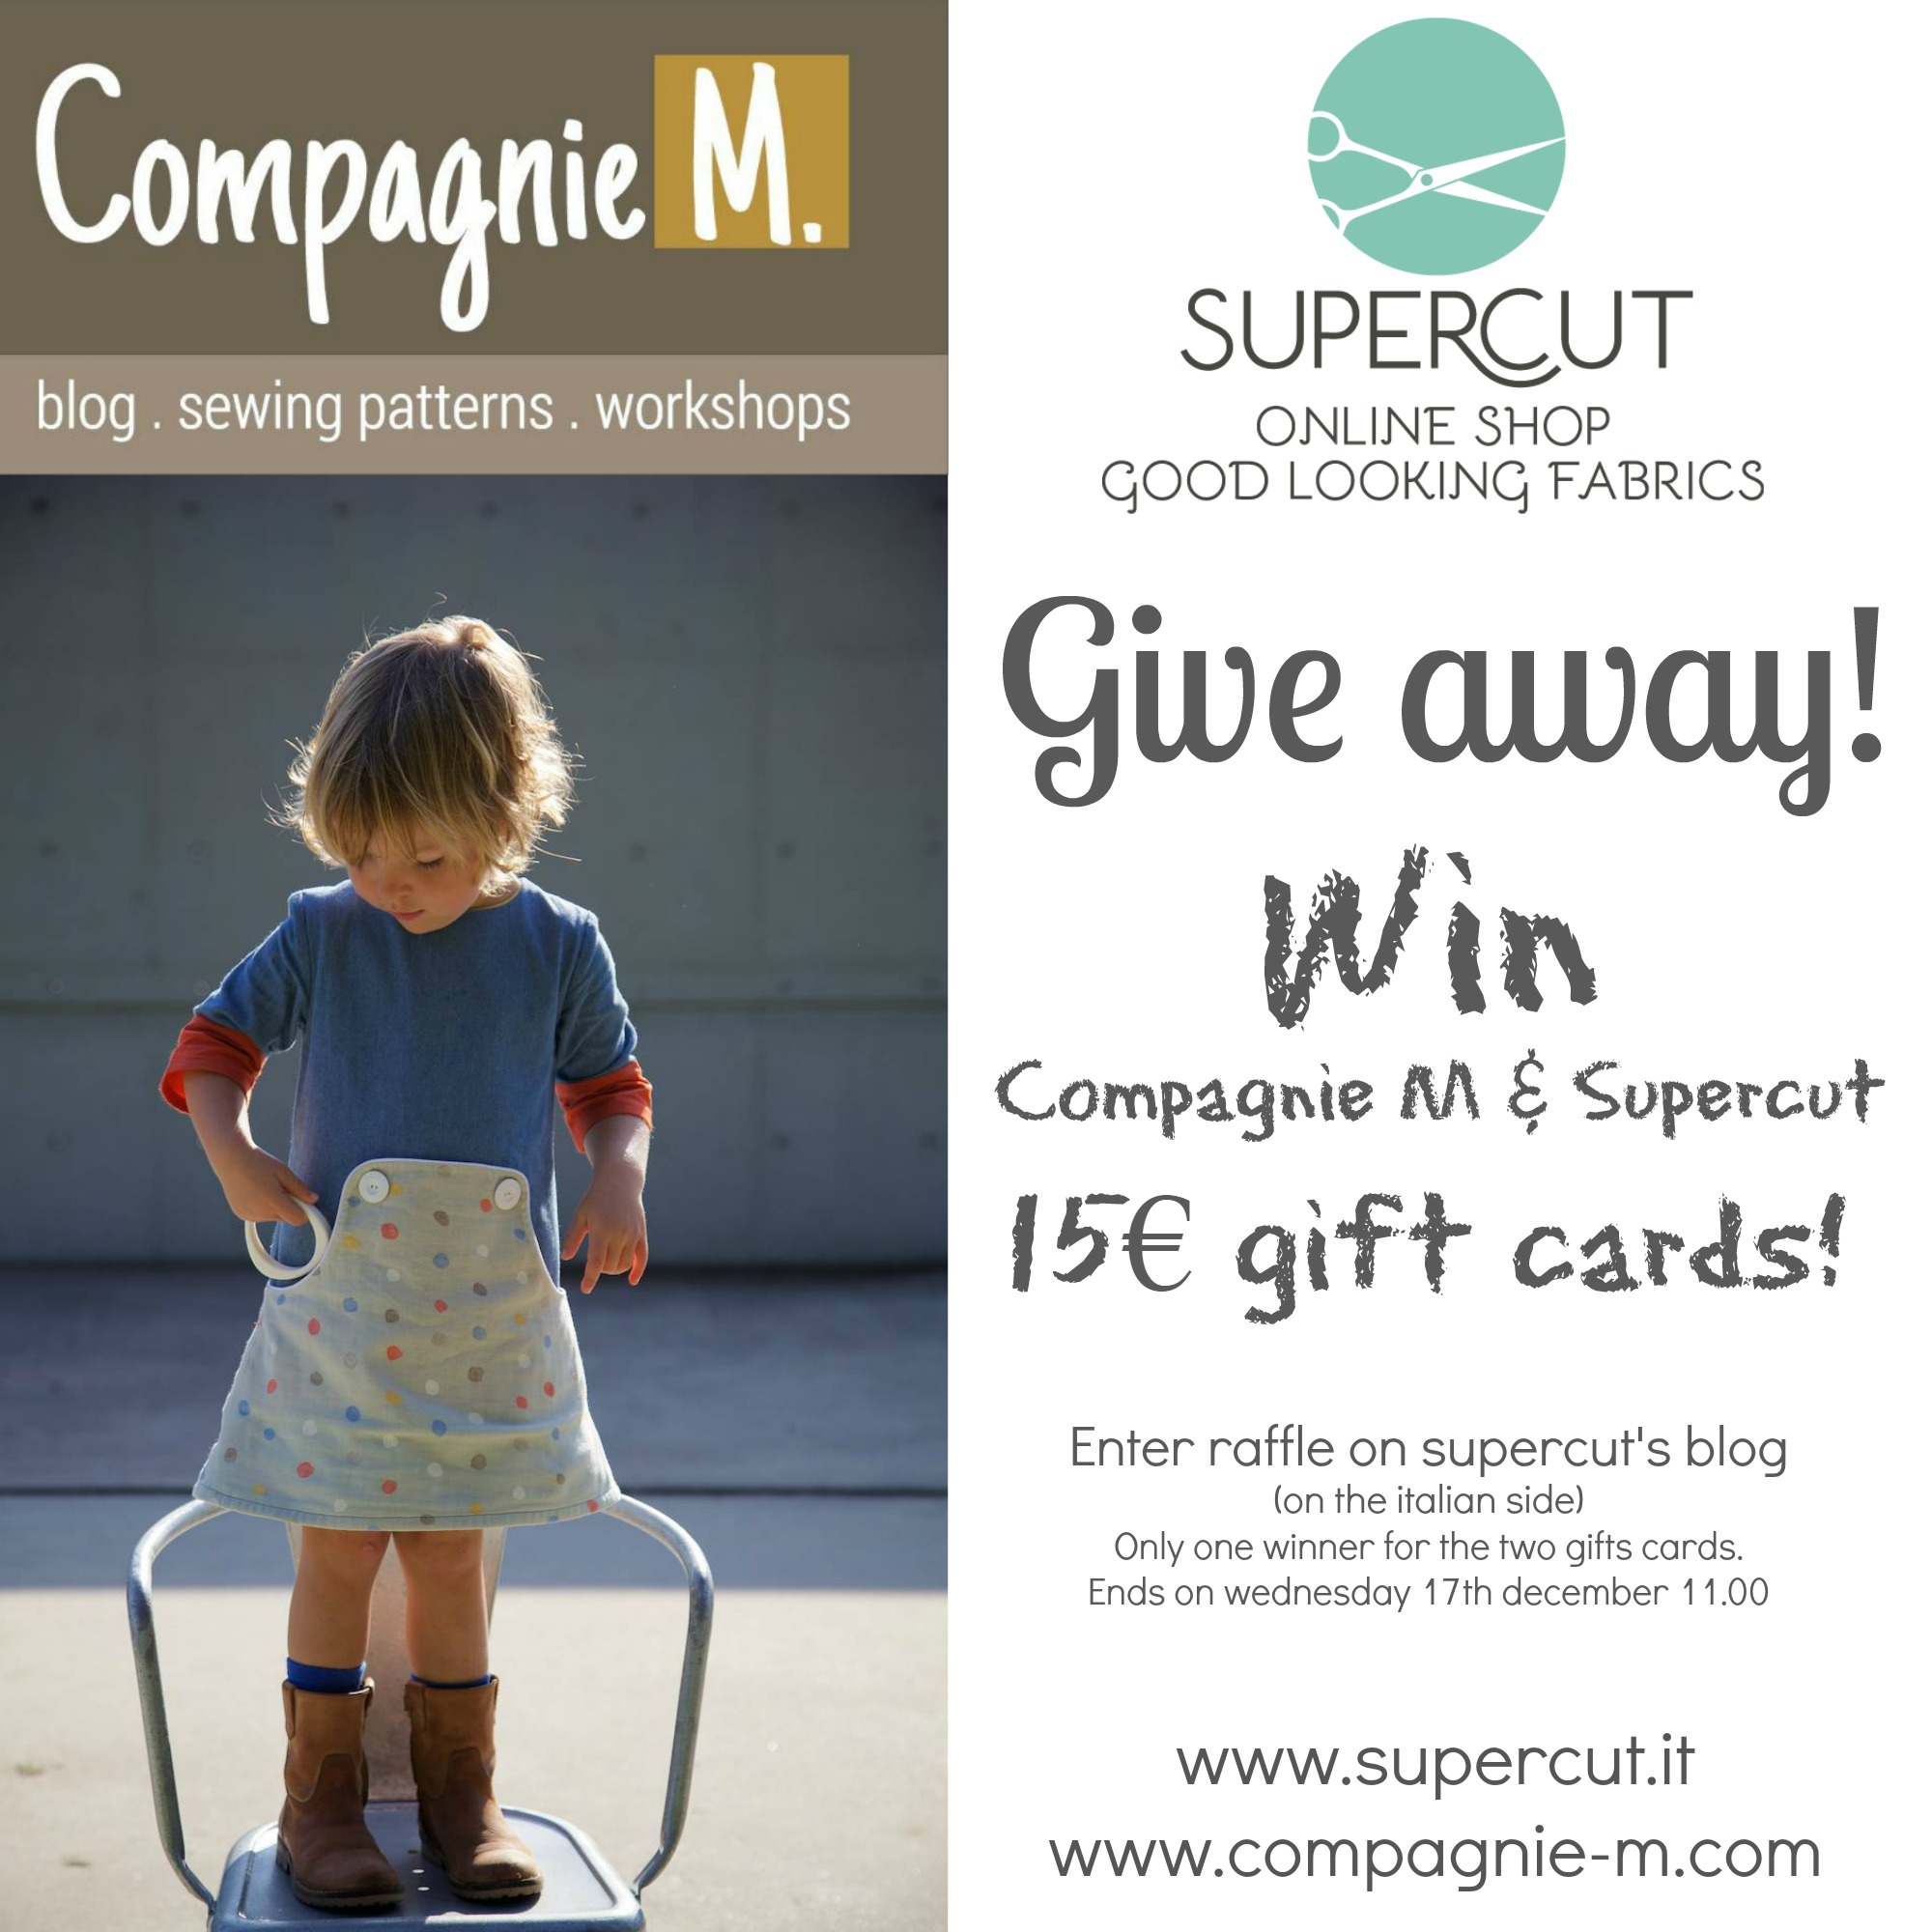 Compagnie-M_flyer_giveaway_supercut